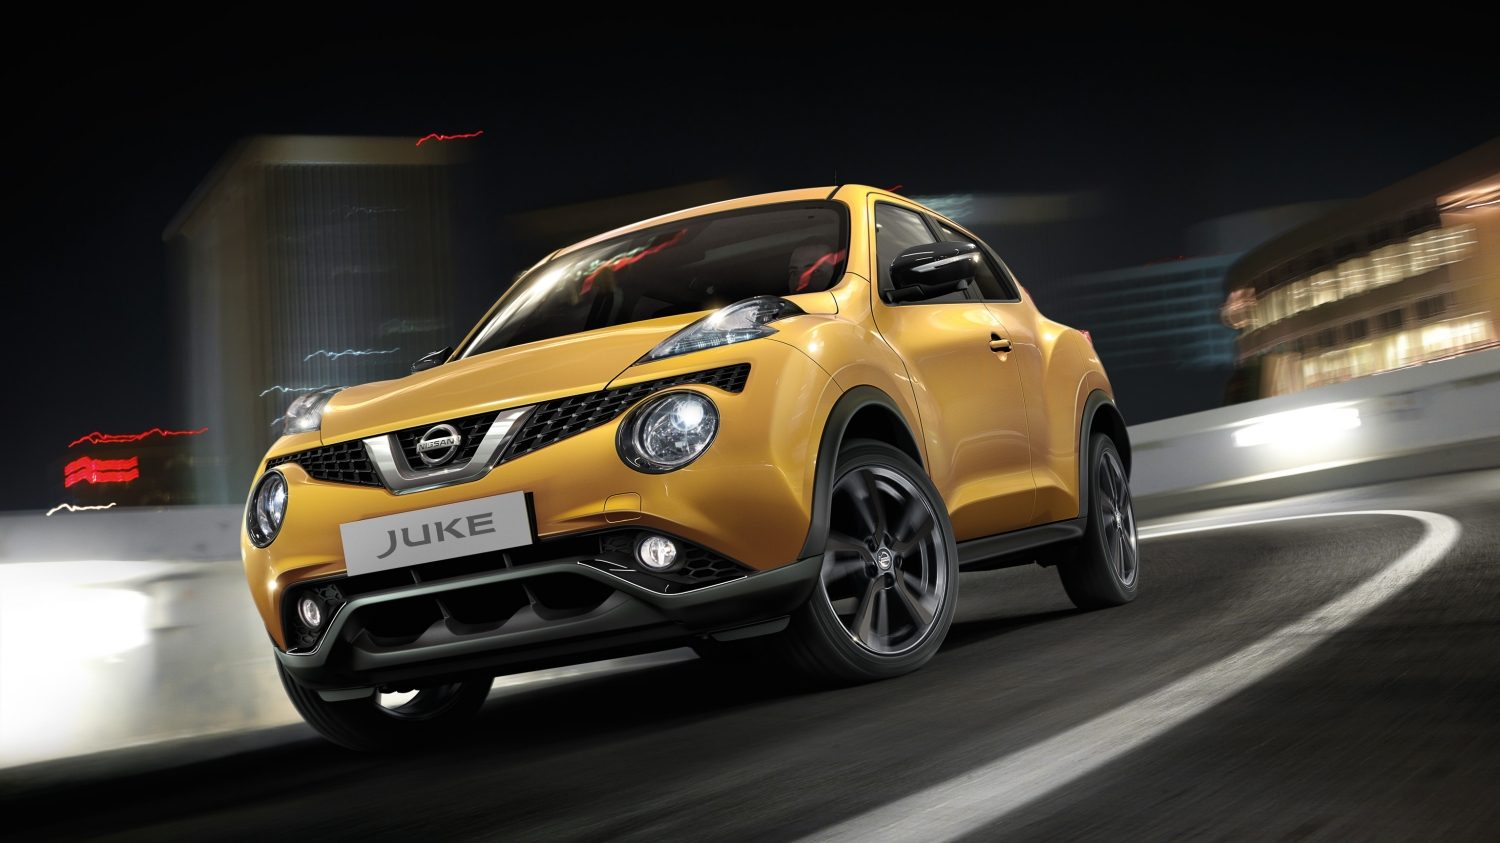 Nissan Juke yellow - 3/4 front view